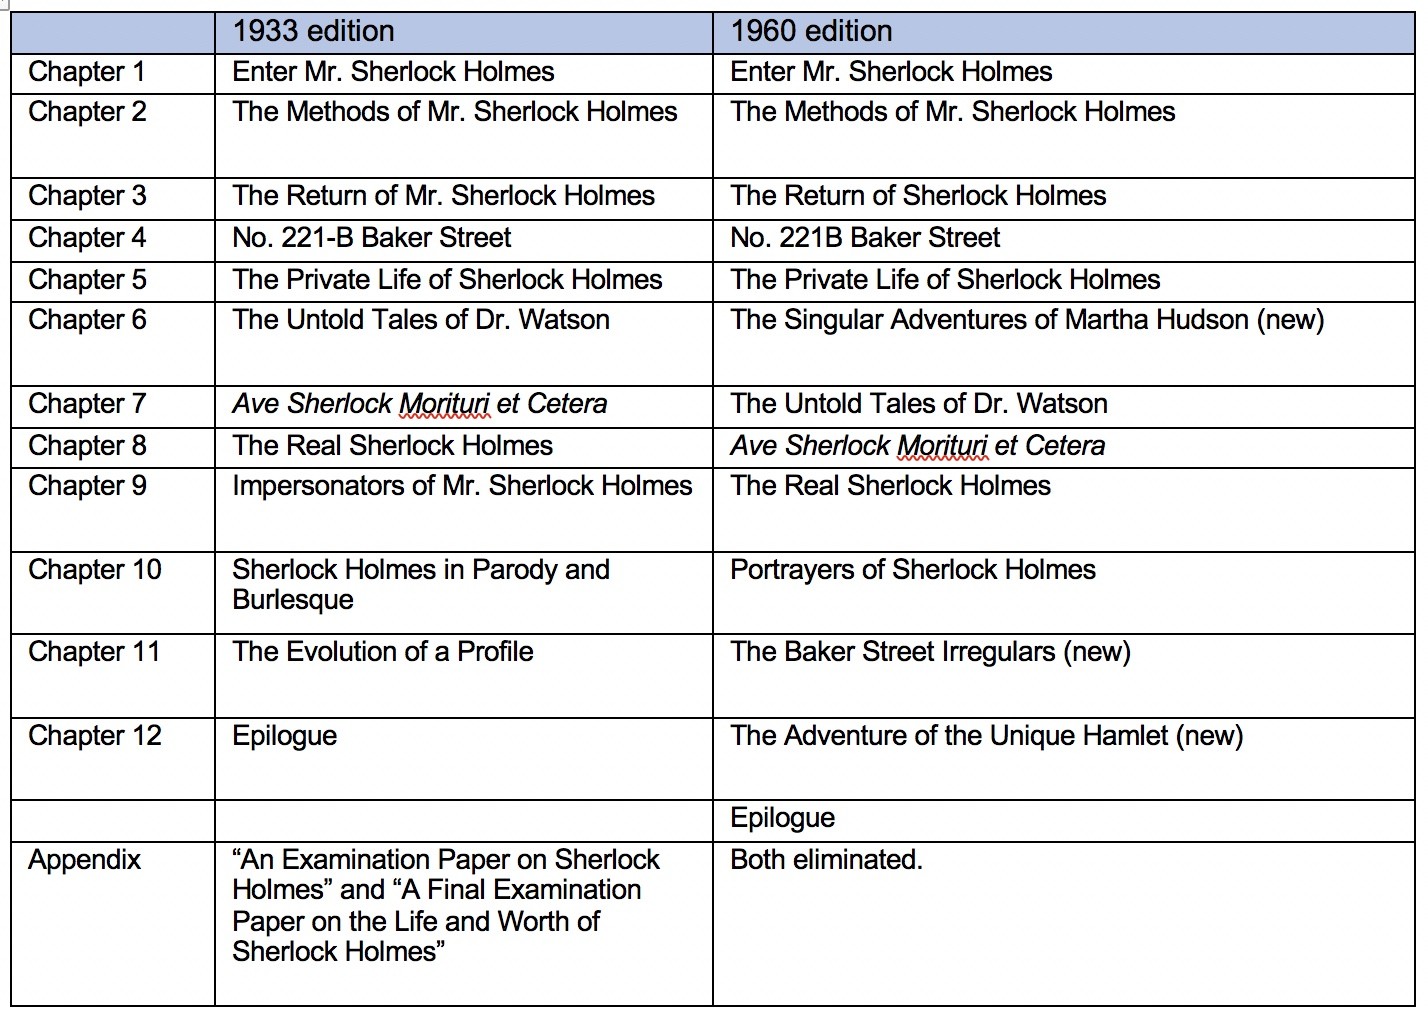 A comparison of chapters in the two editions.